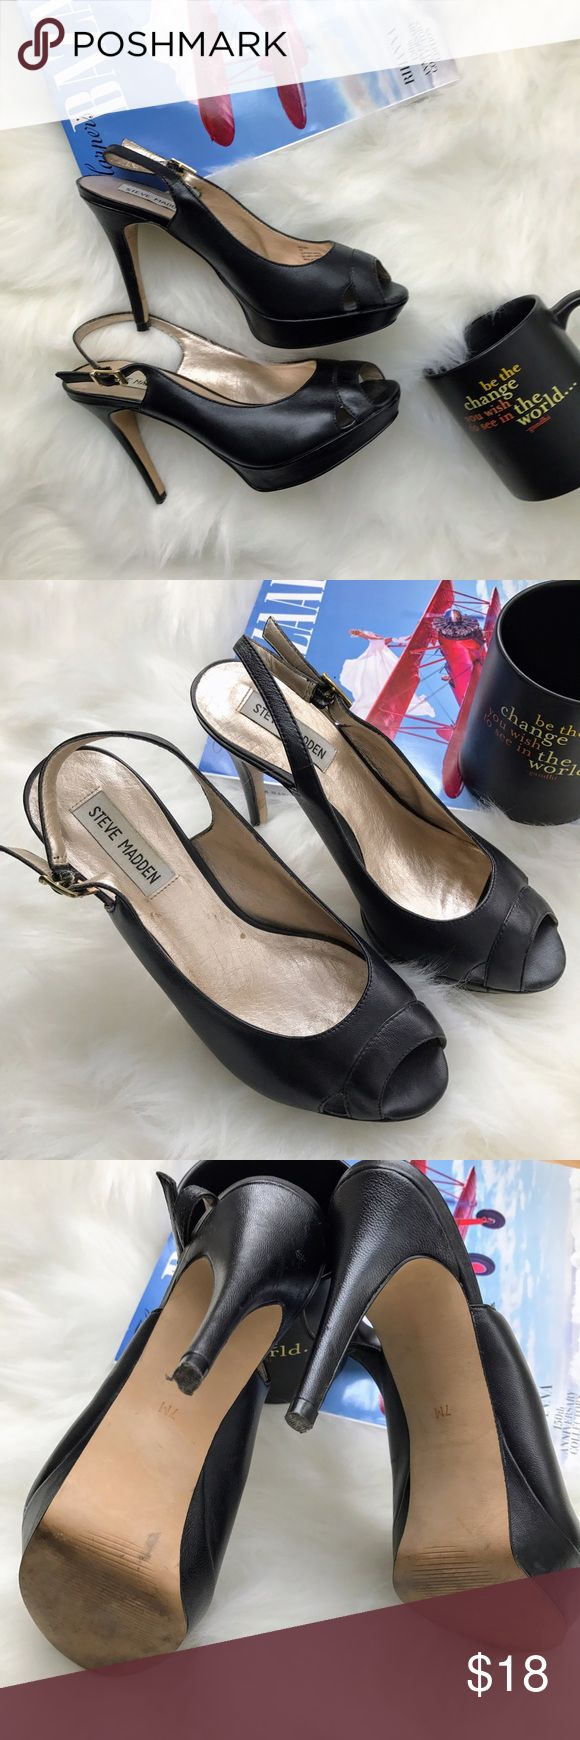 """Steve Madden Black Peep Toe Sling Back Heels Steve Madden. Style: Dreemm. Black leather upper. Peep toe with cut out design. Sling-back with gold buckles. 1"""" lift at toe with 4"""" heel. Size 7M. Shoes are worn in with damage to heel as pictured but still has a lot of life. Will take best offer! No box. Steve Madden Shoes Heels"""